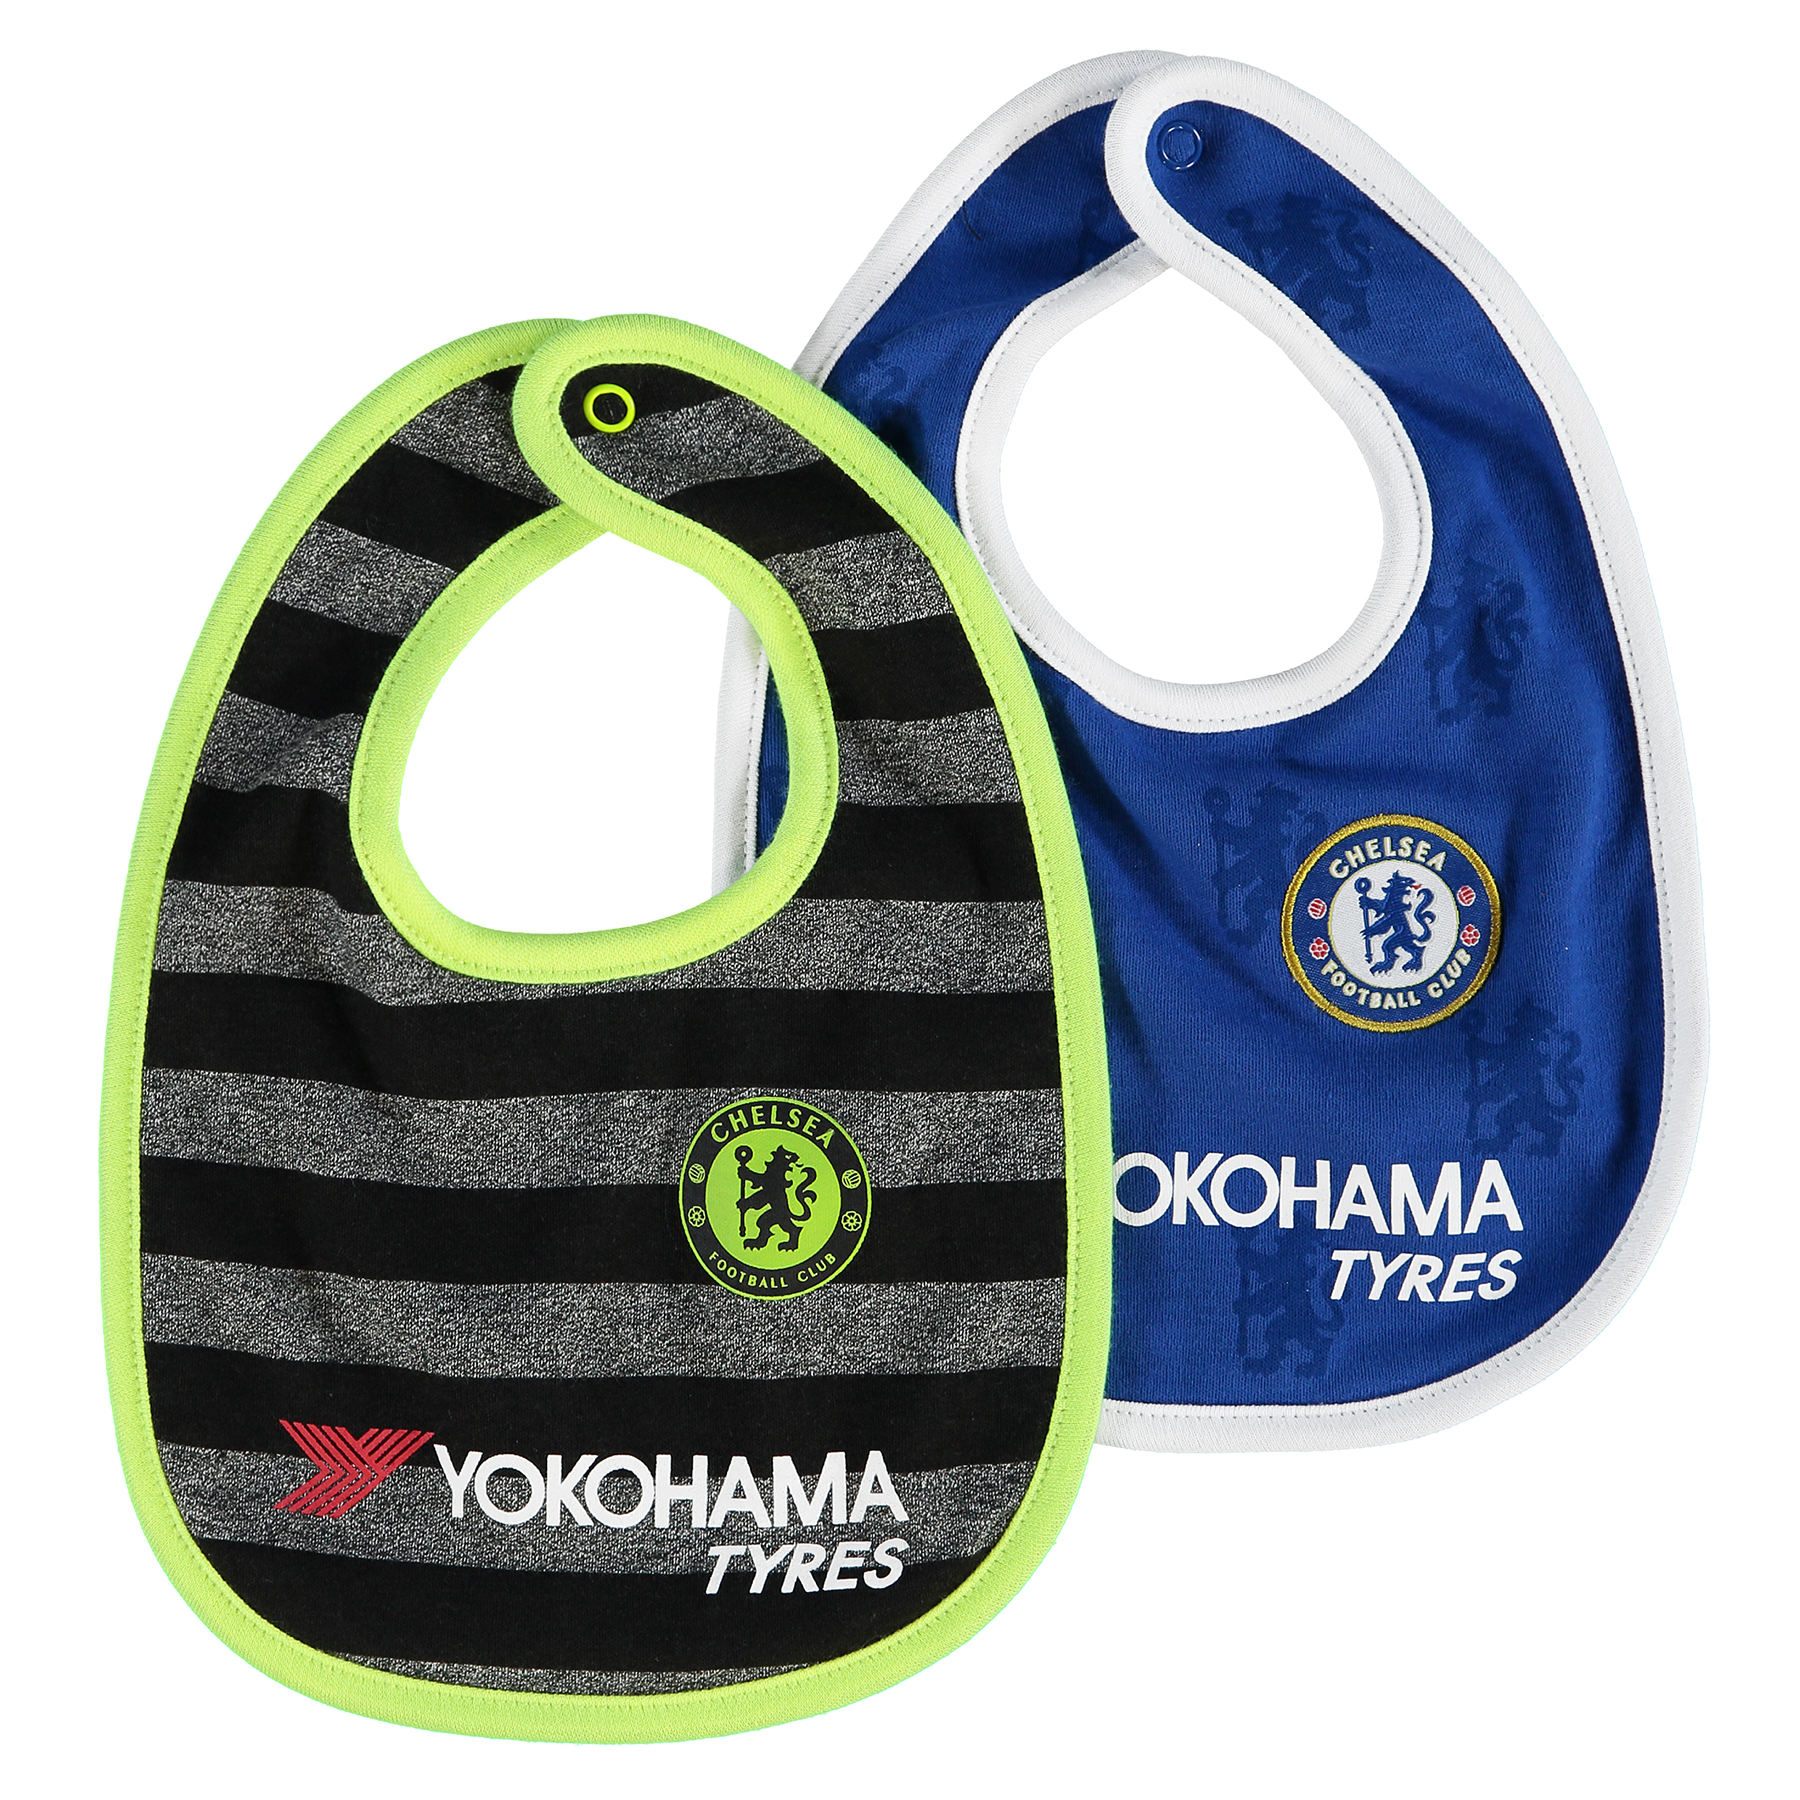 Chelsea Kit 2 PK Bibs - Royal/Black – Baby Your baby can be a blue from birth these Chelsea bibs which feature the printed club crest for pride.   With popper fastenings, these cotton bibs are practical and comfortable, so you can pop them on wherever you are for a flash of Chelsea pride. Details: Printed club crests popper fastenings contrast trims 100% Cotton